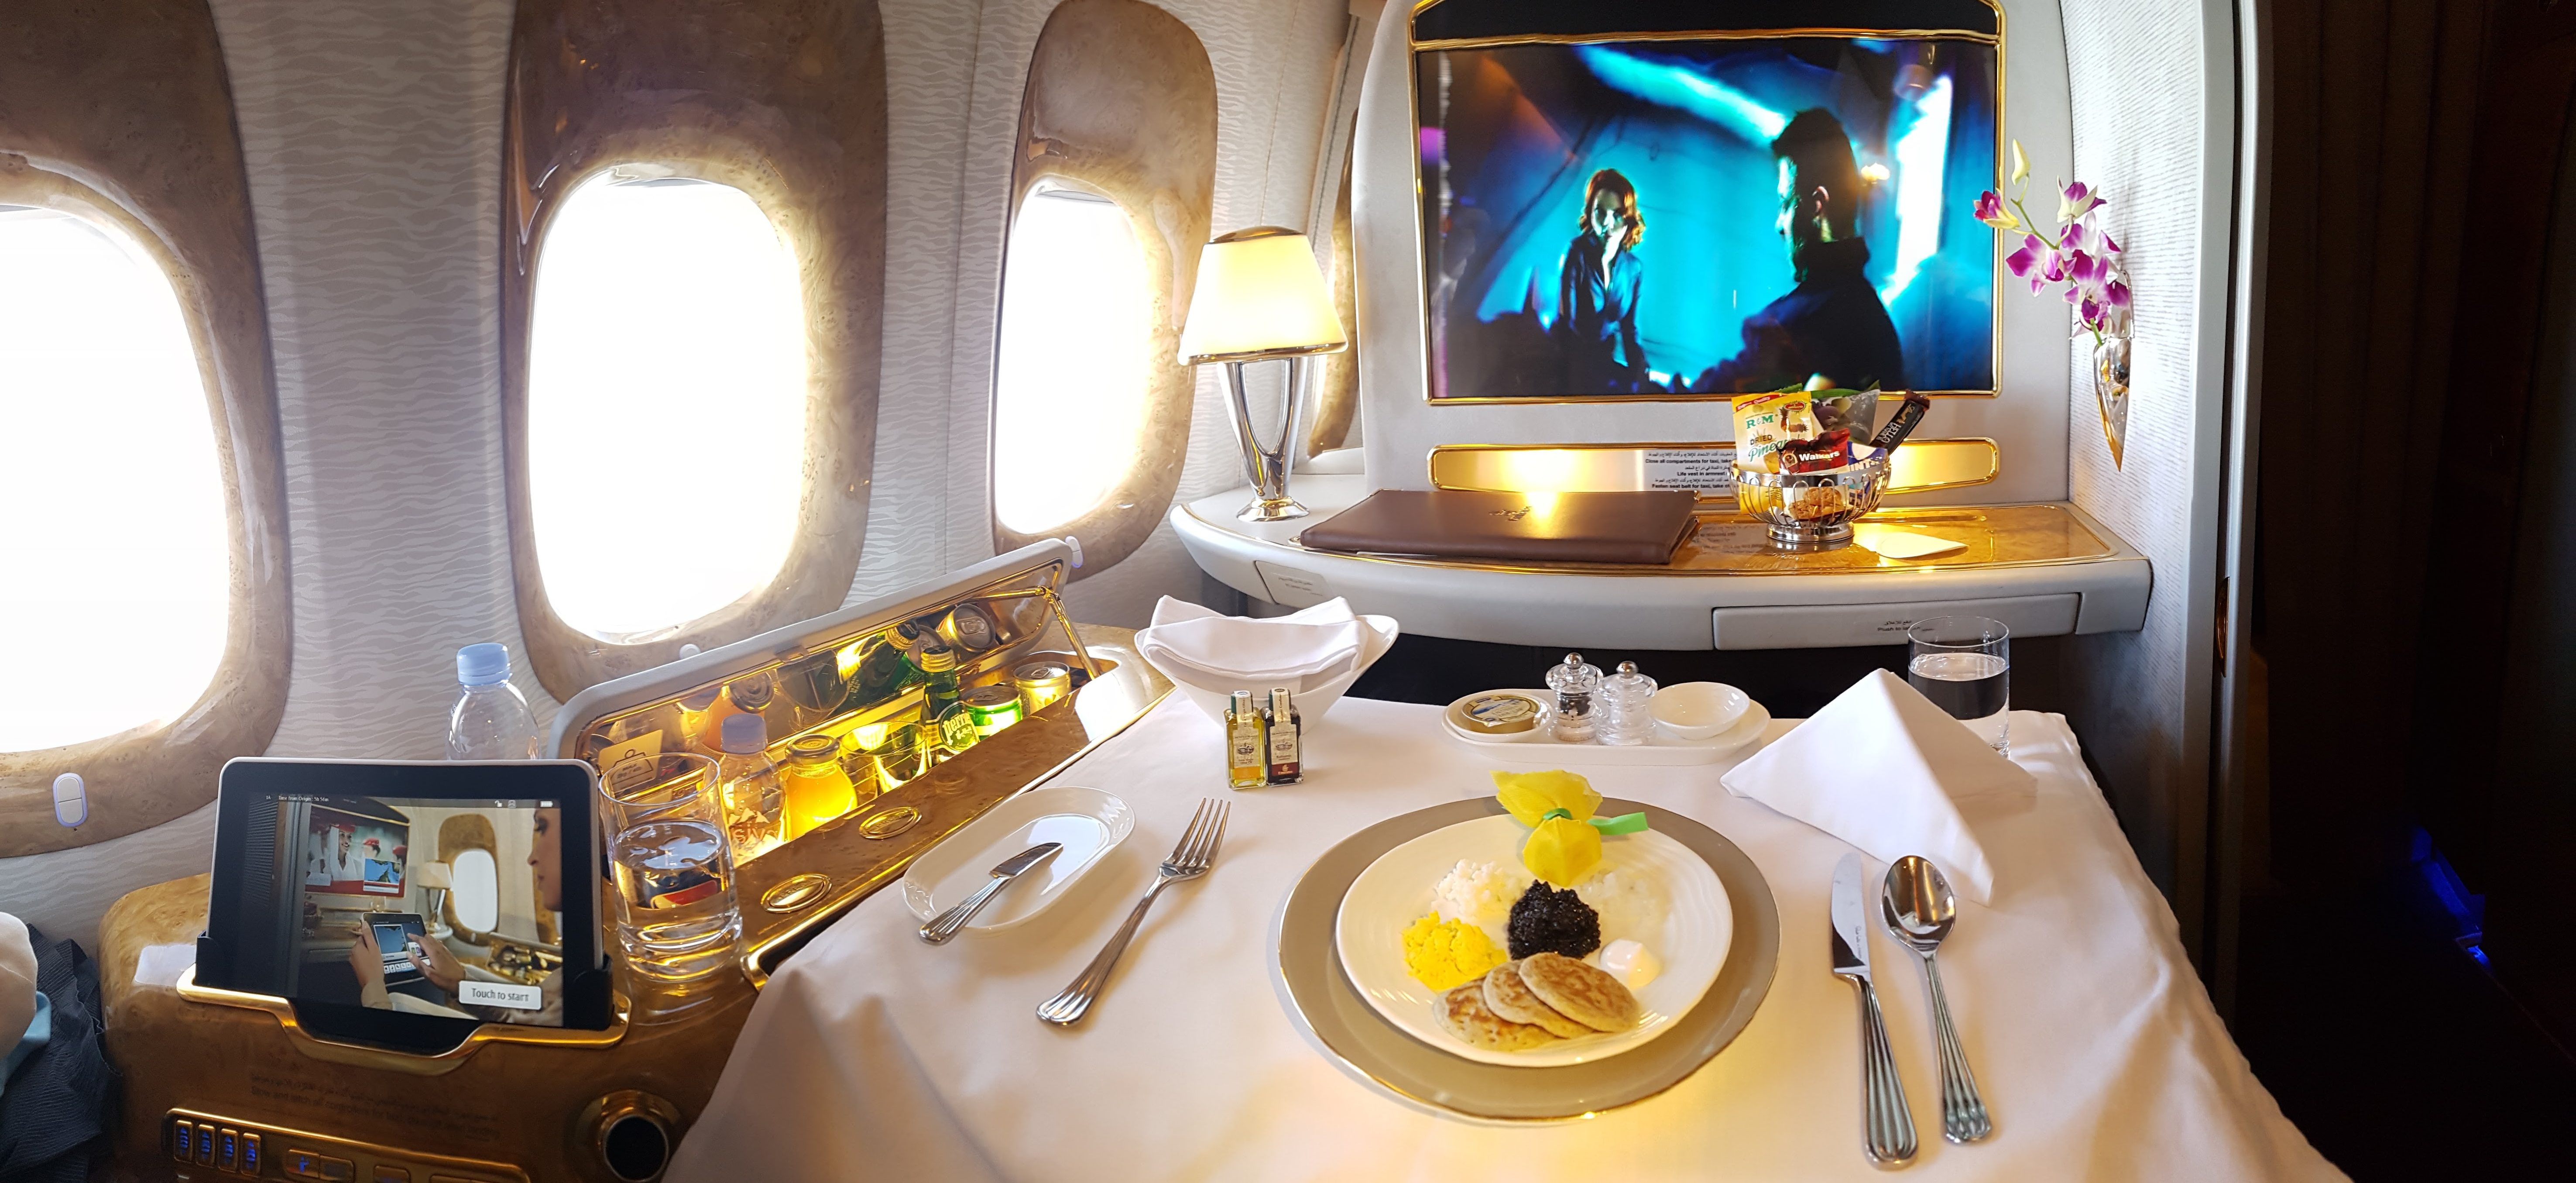 Emirates First Class: Top ten things that are over the top!